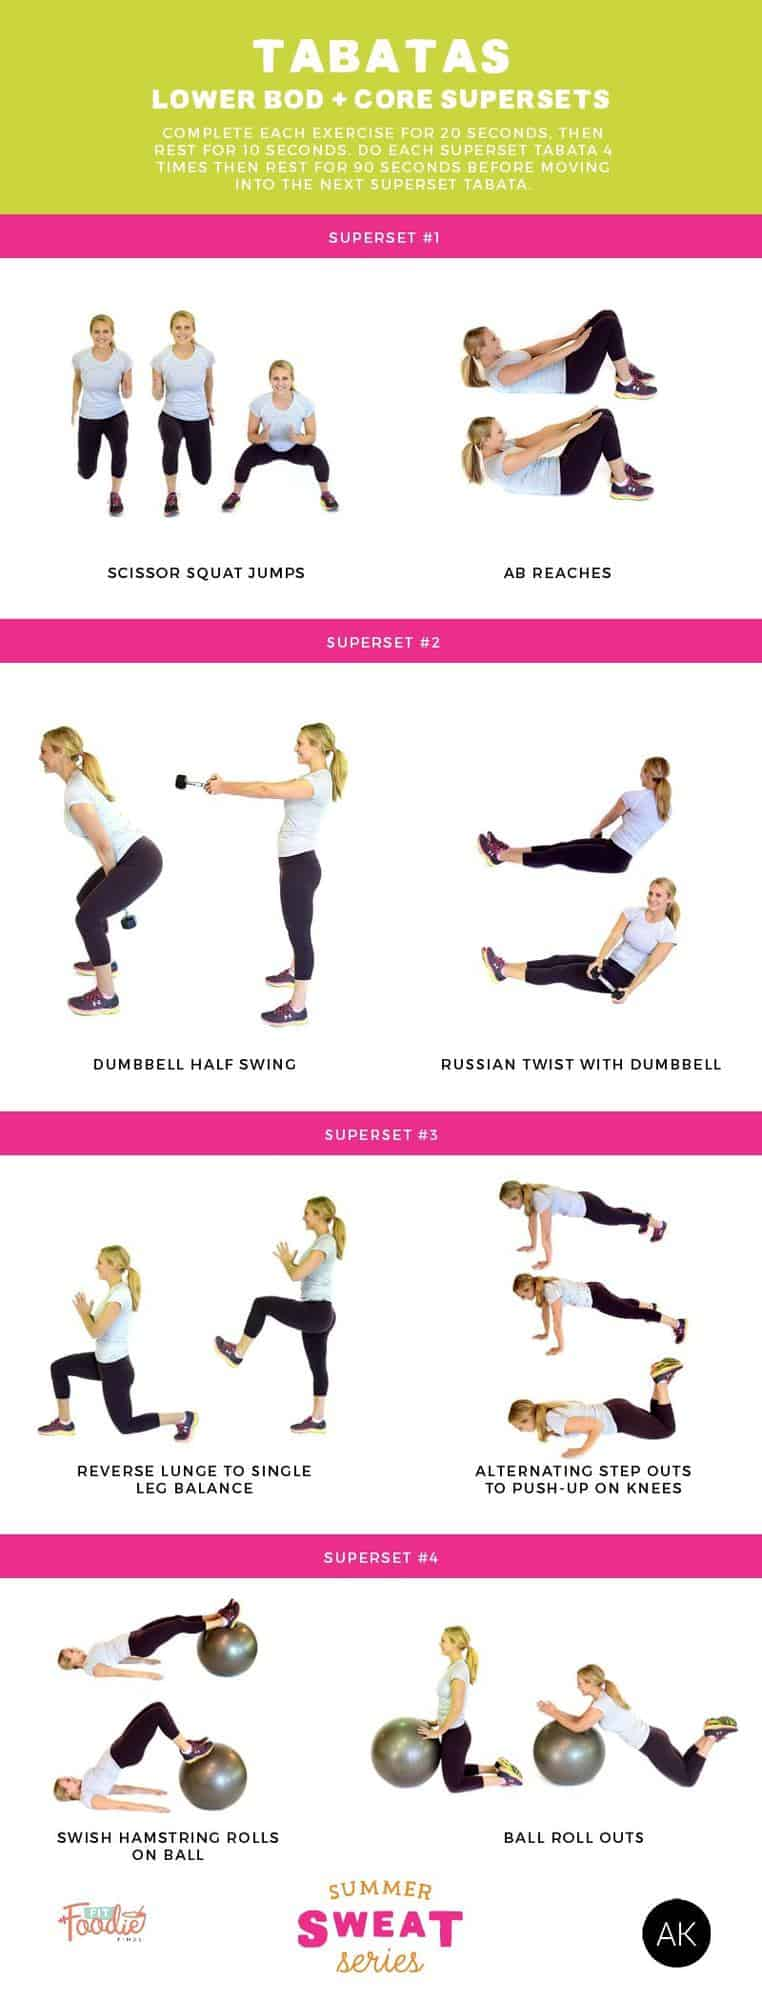 Want a quick yet effective workout? Do tabatas! This workout mixes lower body and core superset exercises and will get your heart pounding!